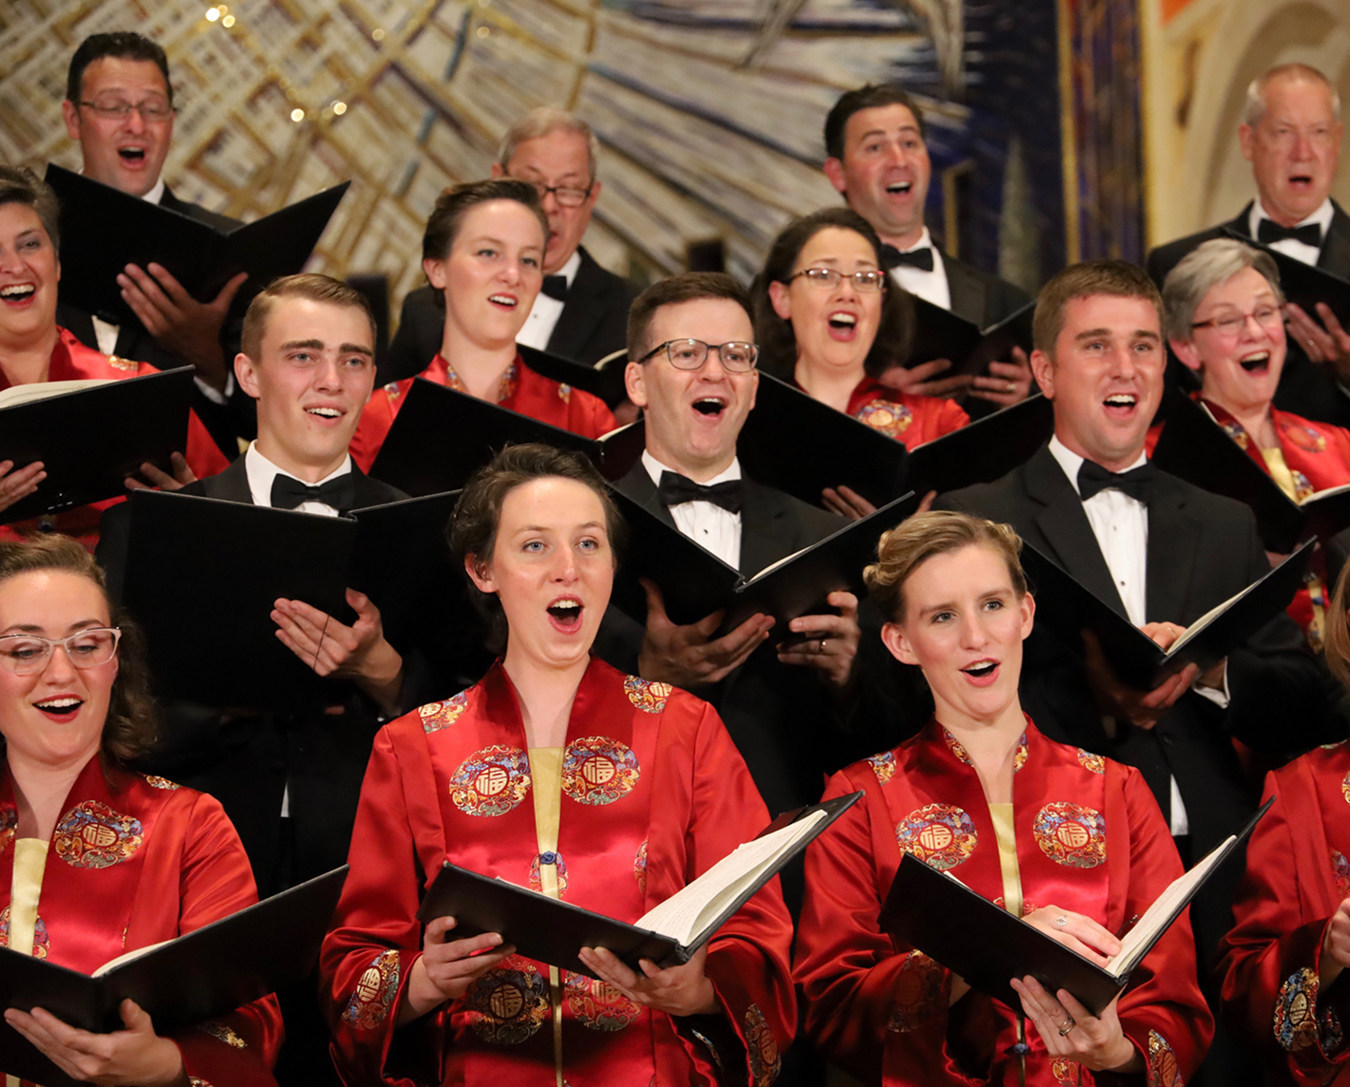 Gloriae Dei Cantores' Musical Advent Calendar is Available for Listening All the Way to Christmas!